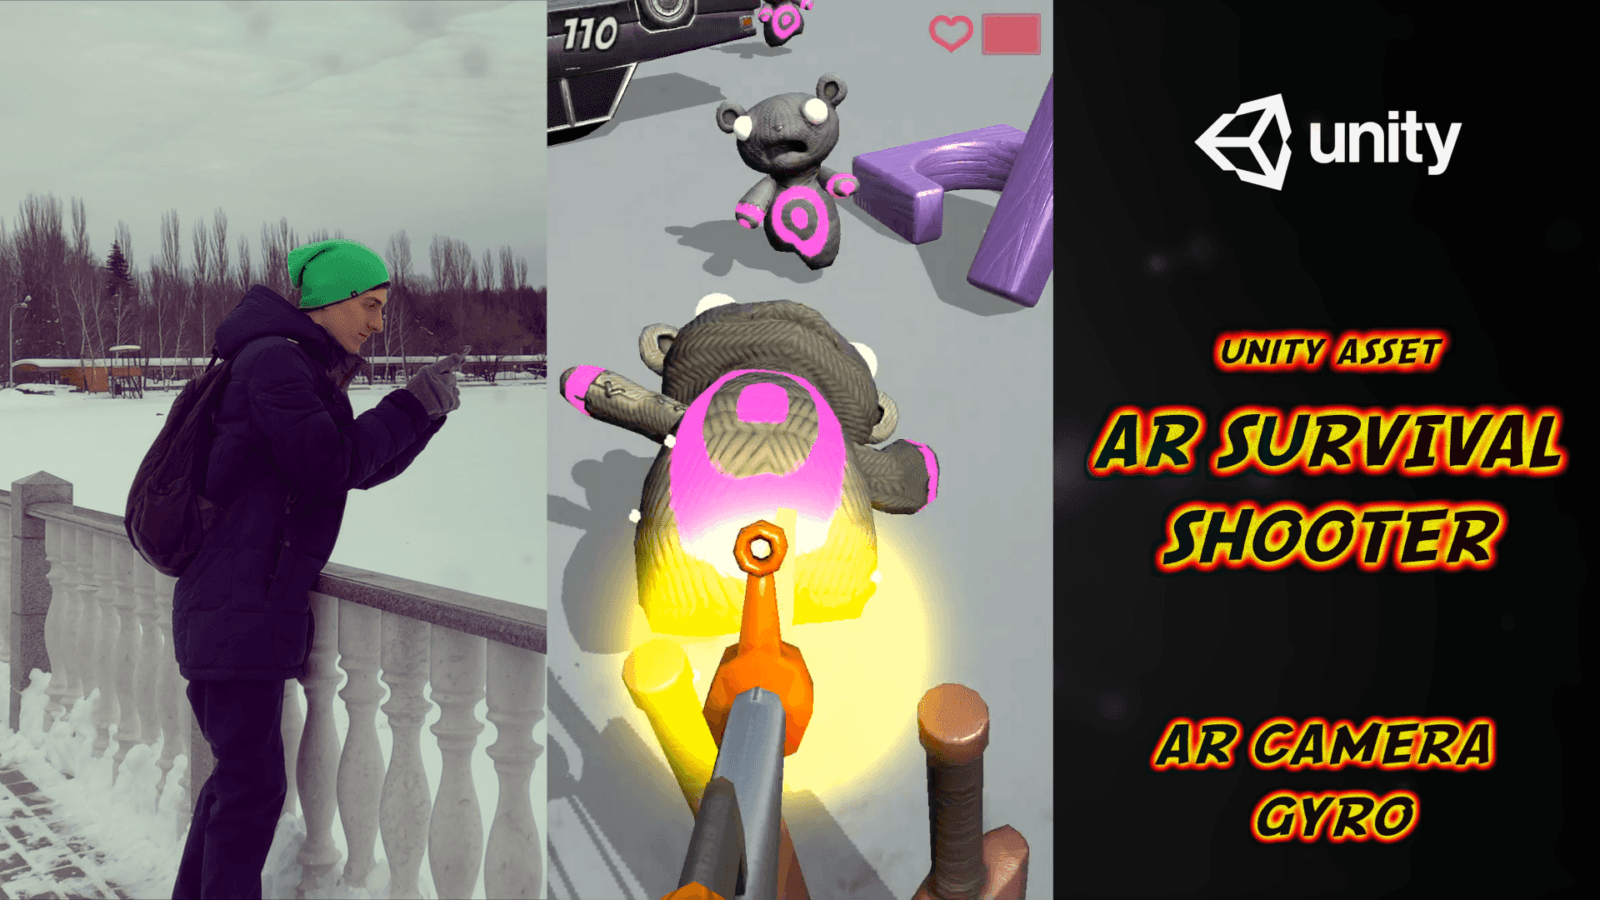 AR Shadow — New Unity Asset 2019 — Vuforia AR or Any AR